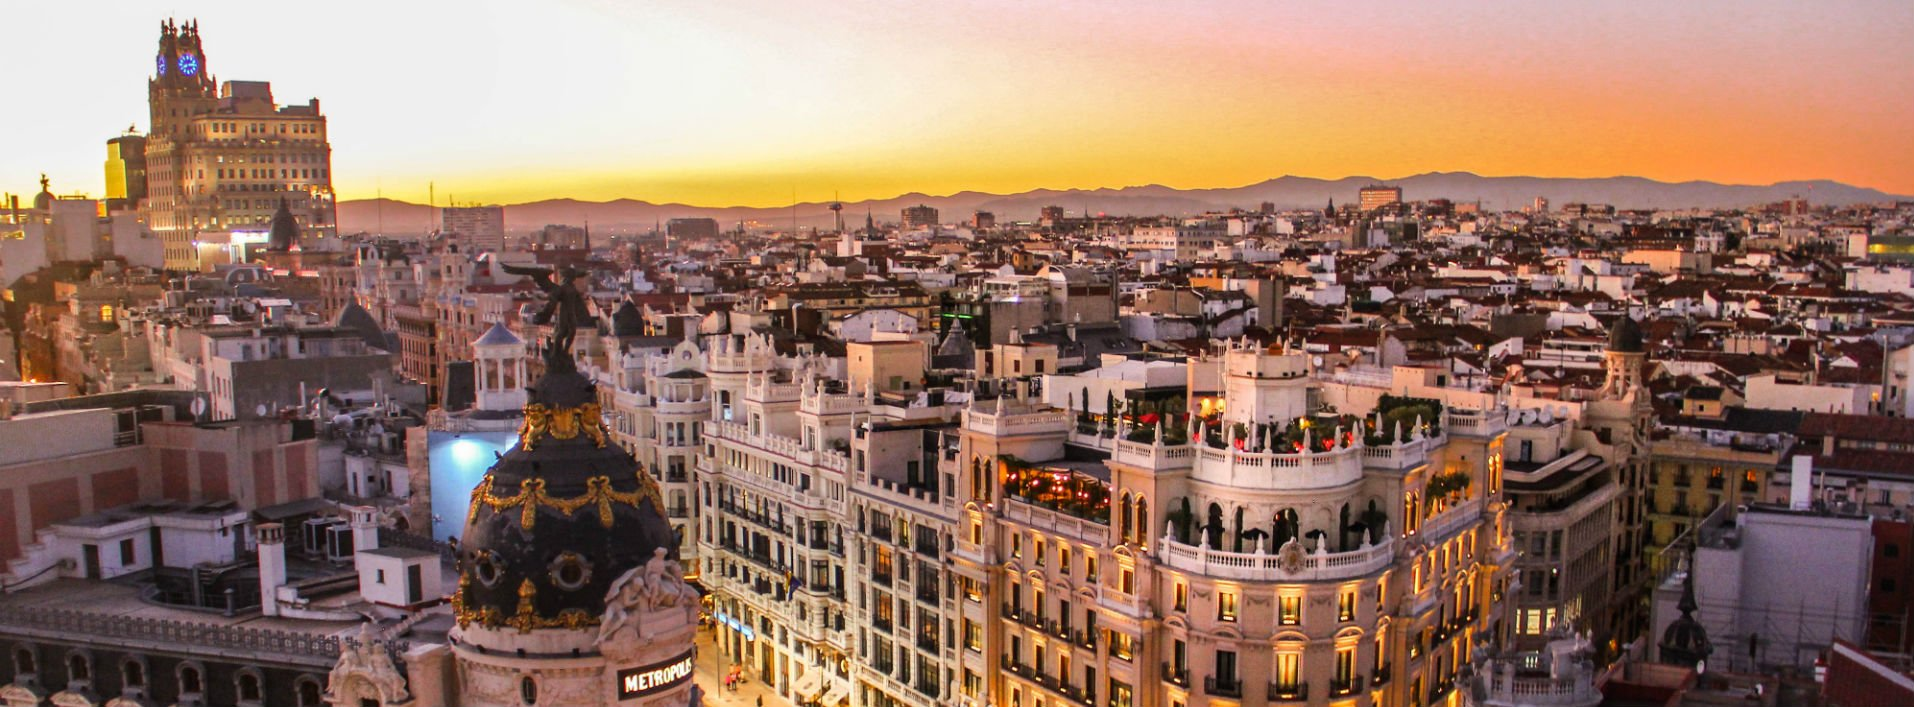 An aerial view of a city in Spain - learn Spanish online with native speakers.